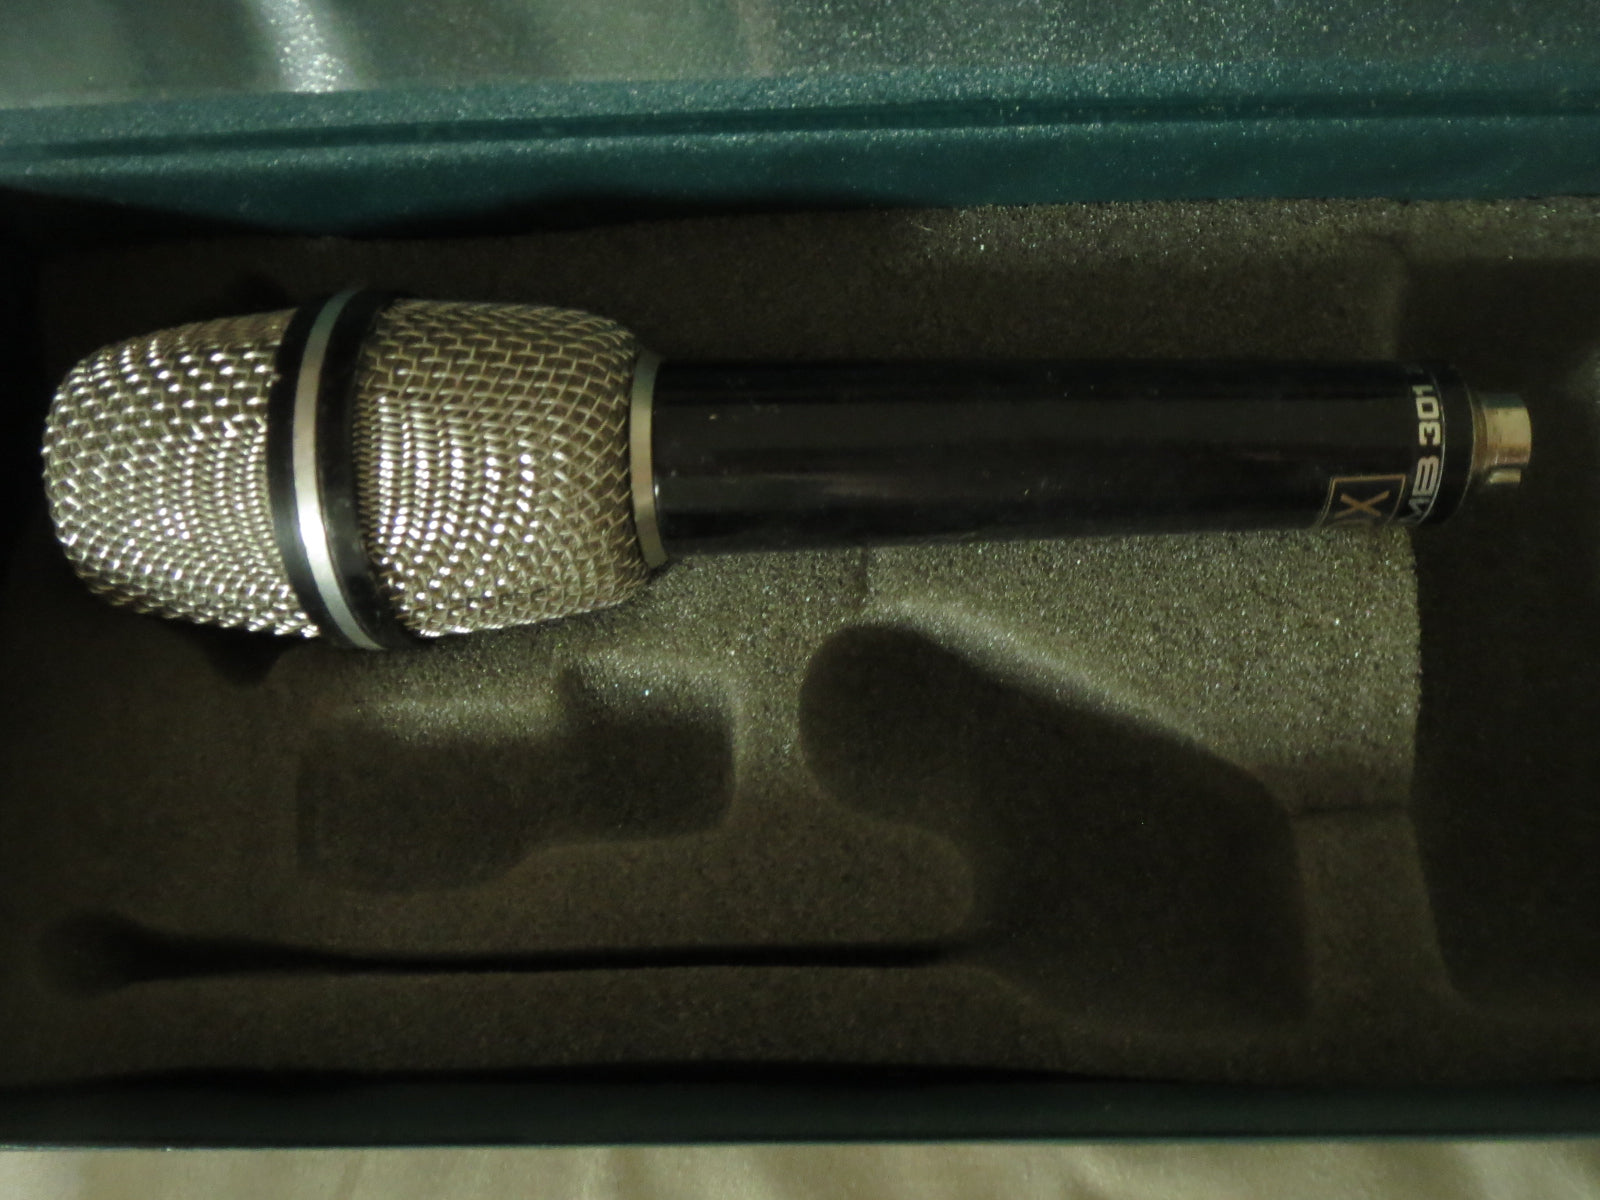 MBHO/HAUN MB301 VINTAGE GERMAN MIC W/XLR CABLE, NEW RCA STEPHEN SANK RIBBON